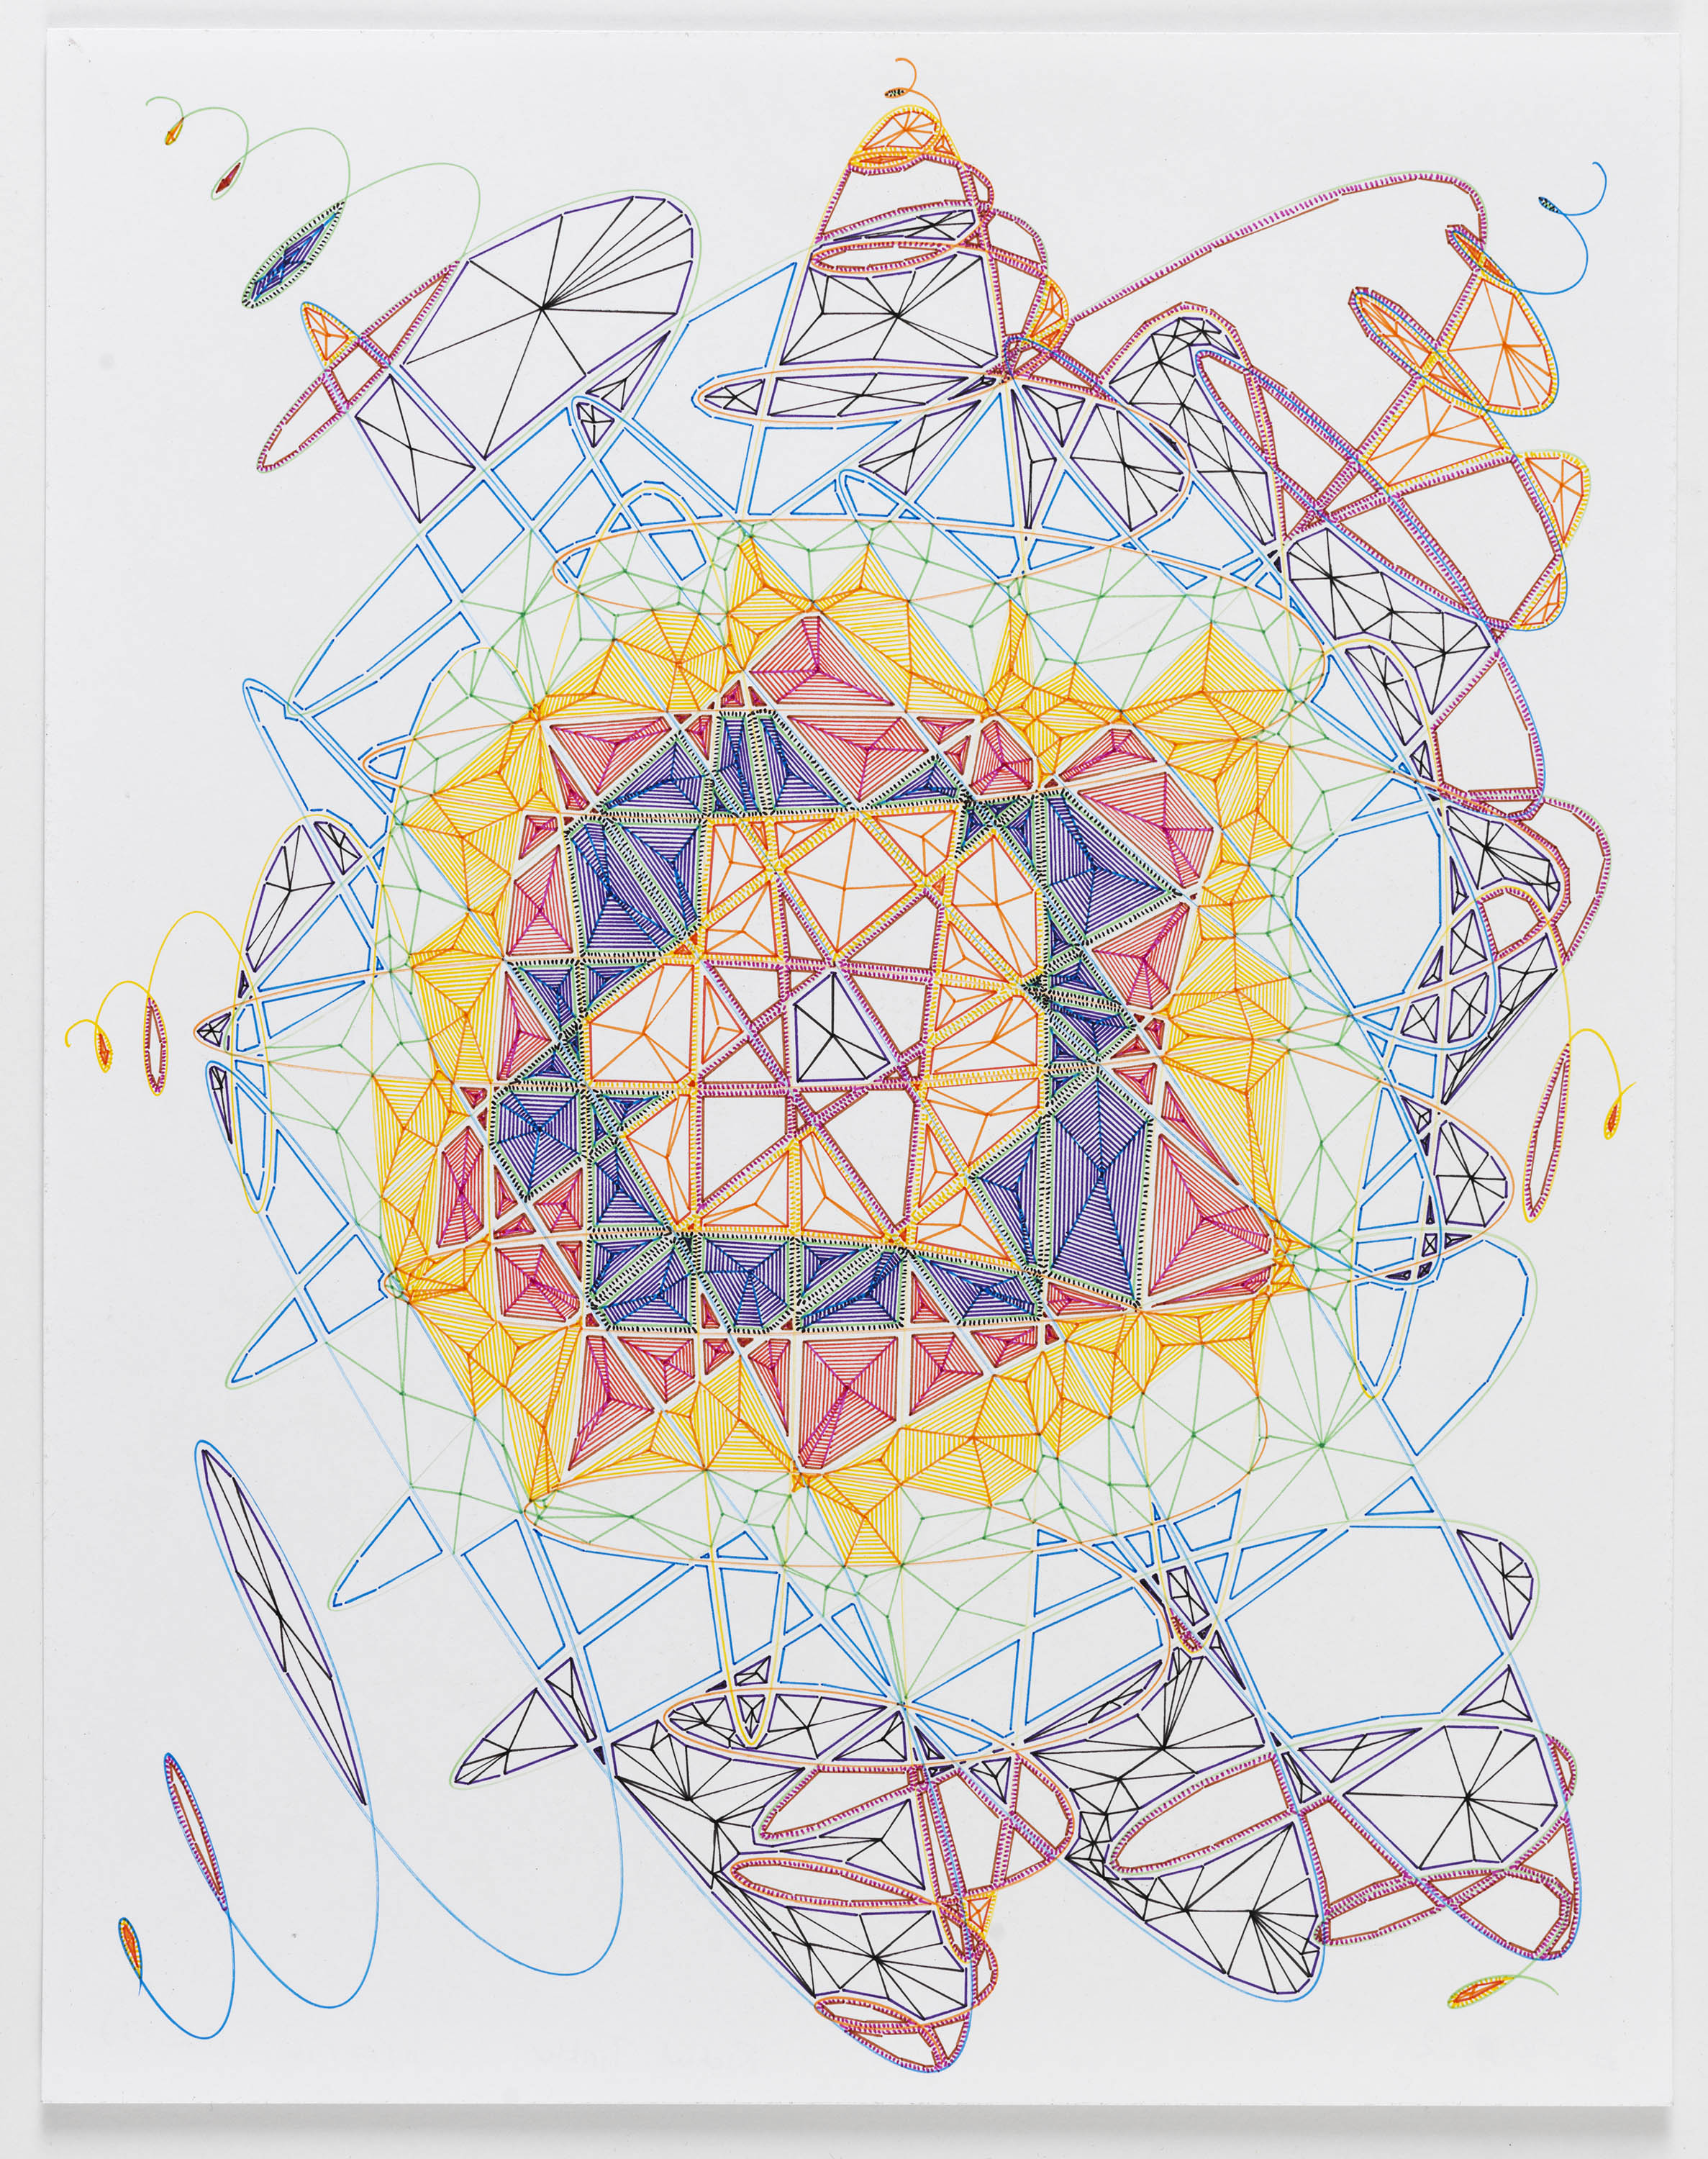 """Book 5 Volume 1 Page 40.2, 2016  in """"Richard Tinkler: Drawings"""" at 56 Henry."""